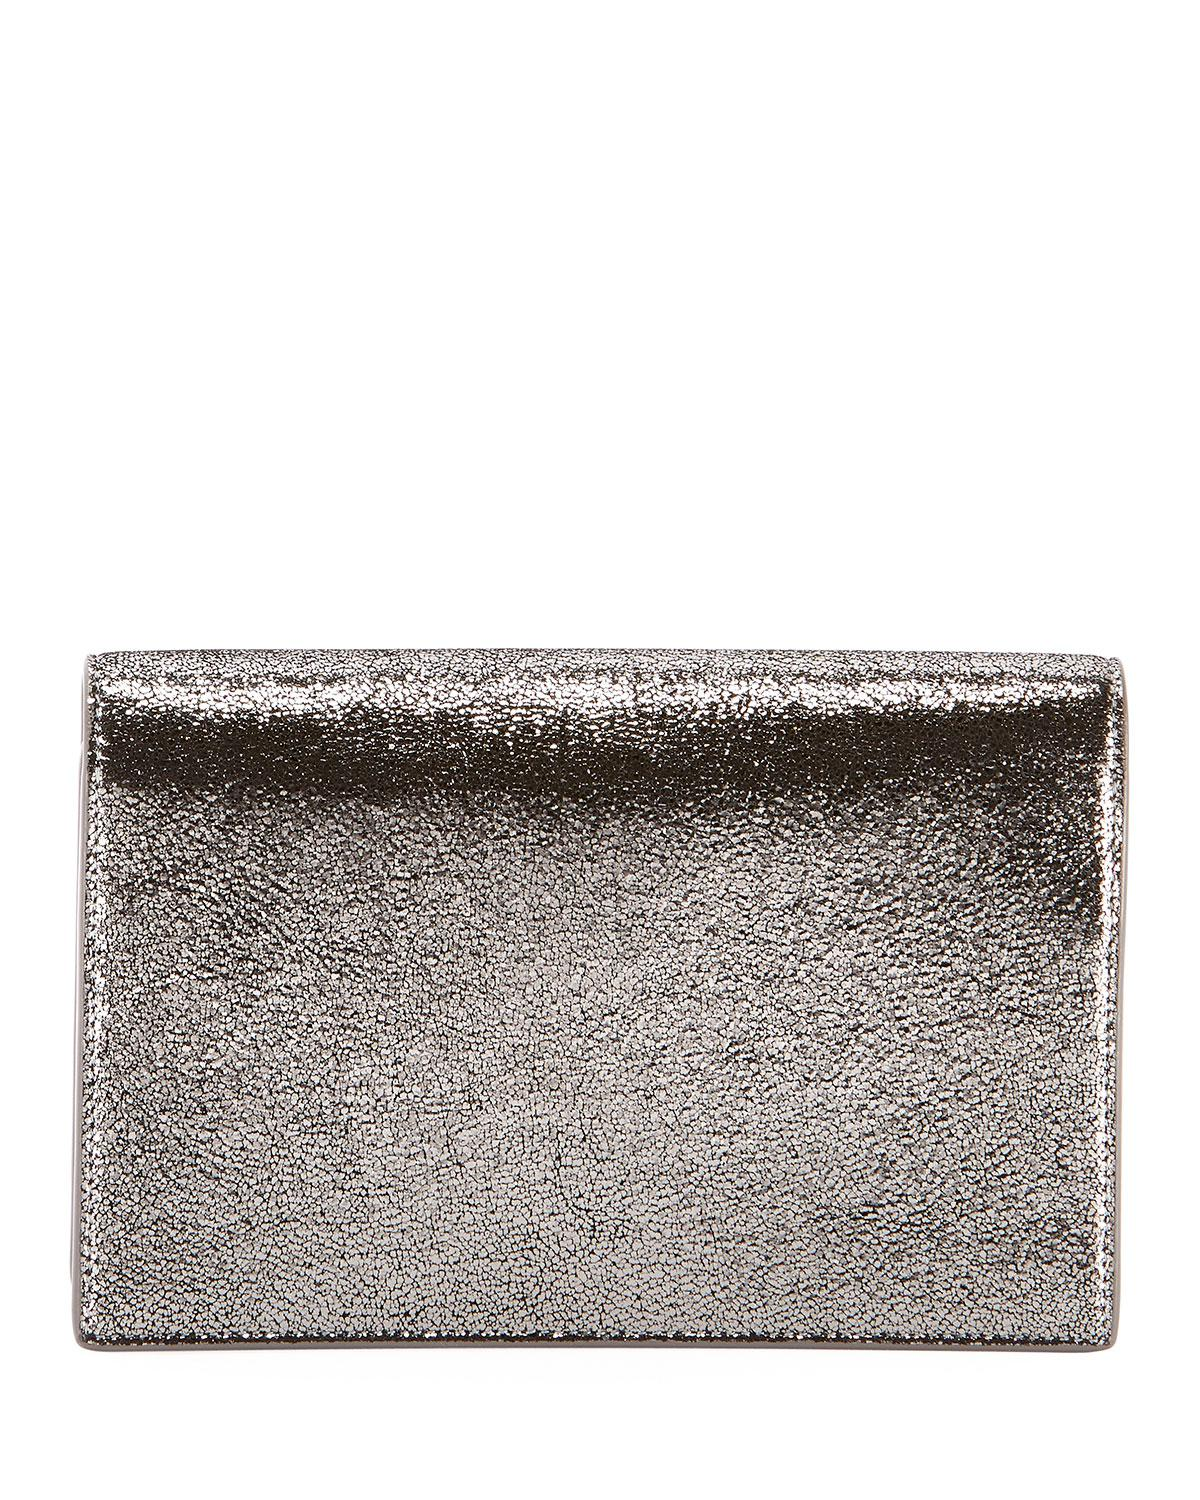 Lyst - Saint Laurent Kate Monogram Ysl Small Crackled Metallic ... 5577ffab03ec4